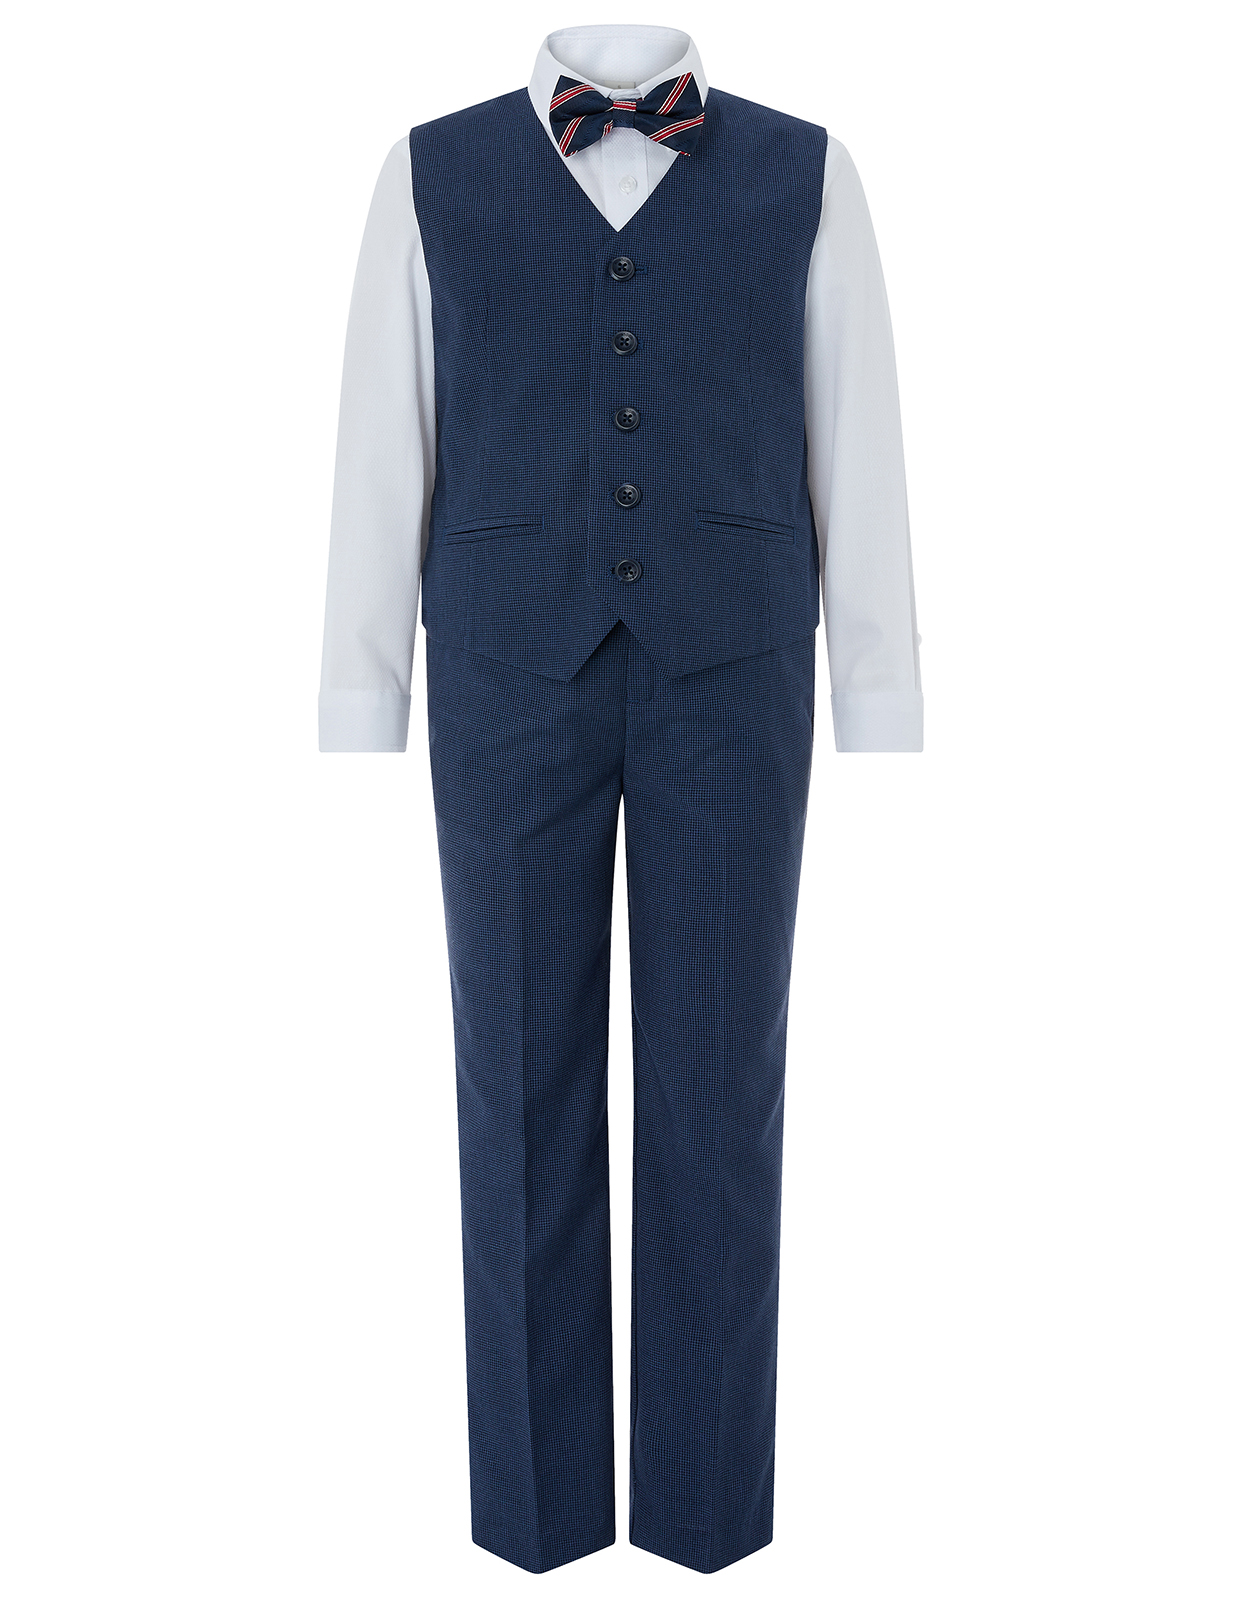 Monsoon Samual 4pc Waistcoat Suit Set